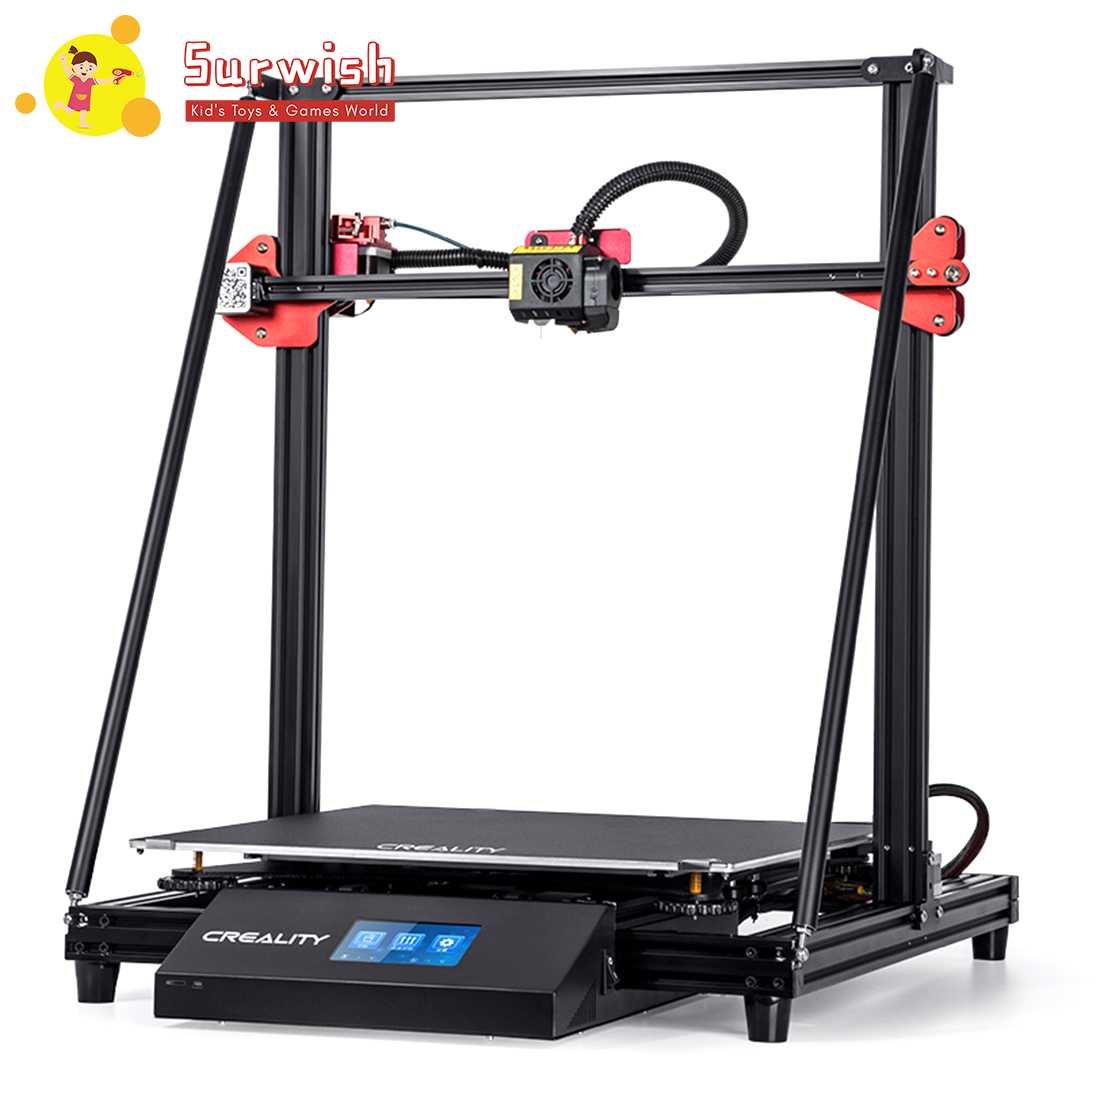 Creality3D CR-10 MAX 3D Printer With Printing Size Of 450x450x470mm - AUS Plug/UK Plug/ EU Plug/US Plug